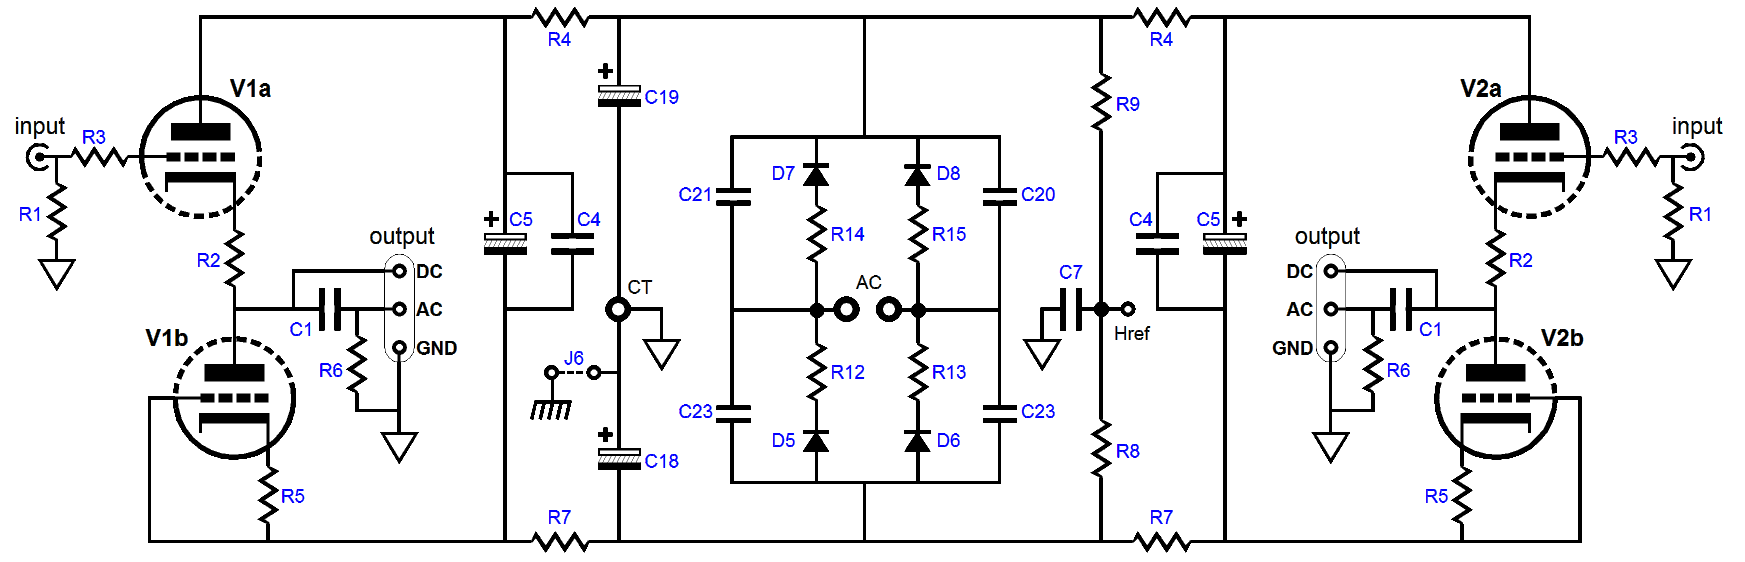 Aikido Cathode Follower 2 Impedance Multiplier Circuits And The Ps 6 Dc Voltage Doubler Circuit Both Channels Bipolar High Power Supply Are Shown In Above Schematic Acf Uses A Two Triodes Per Channel